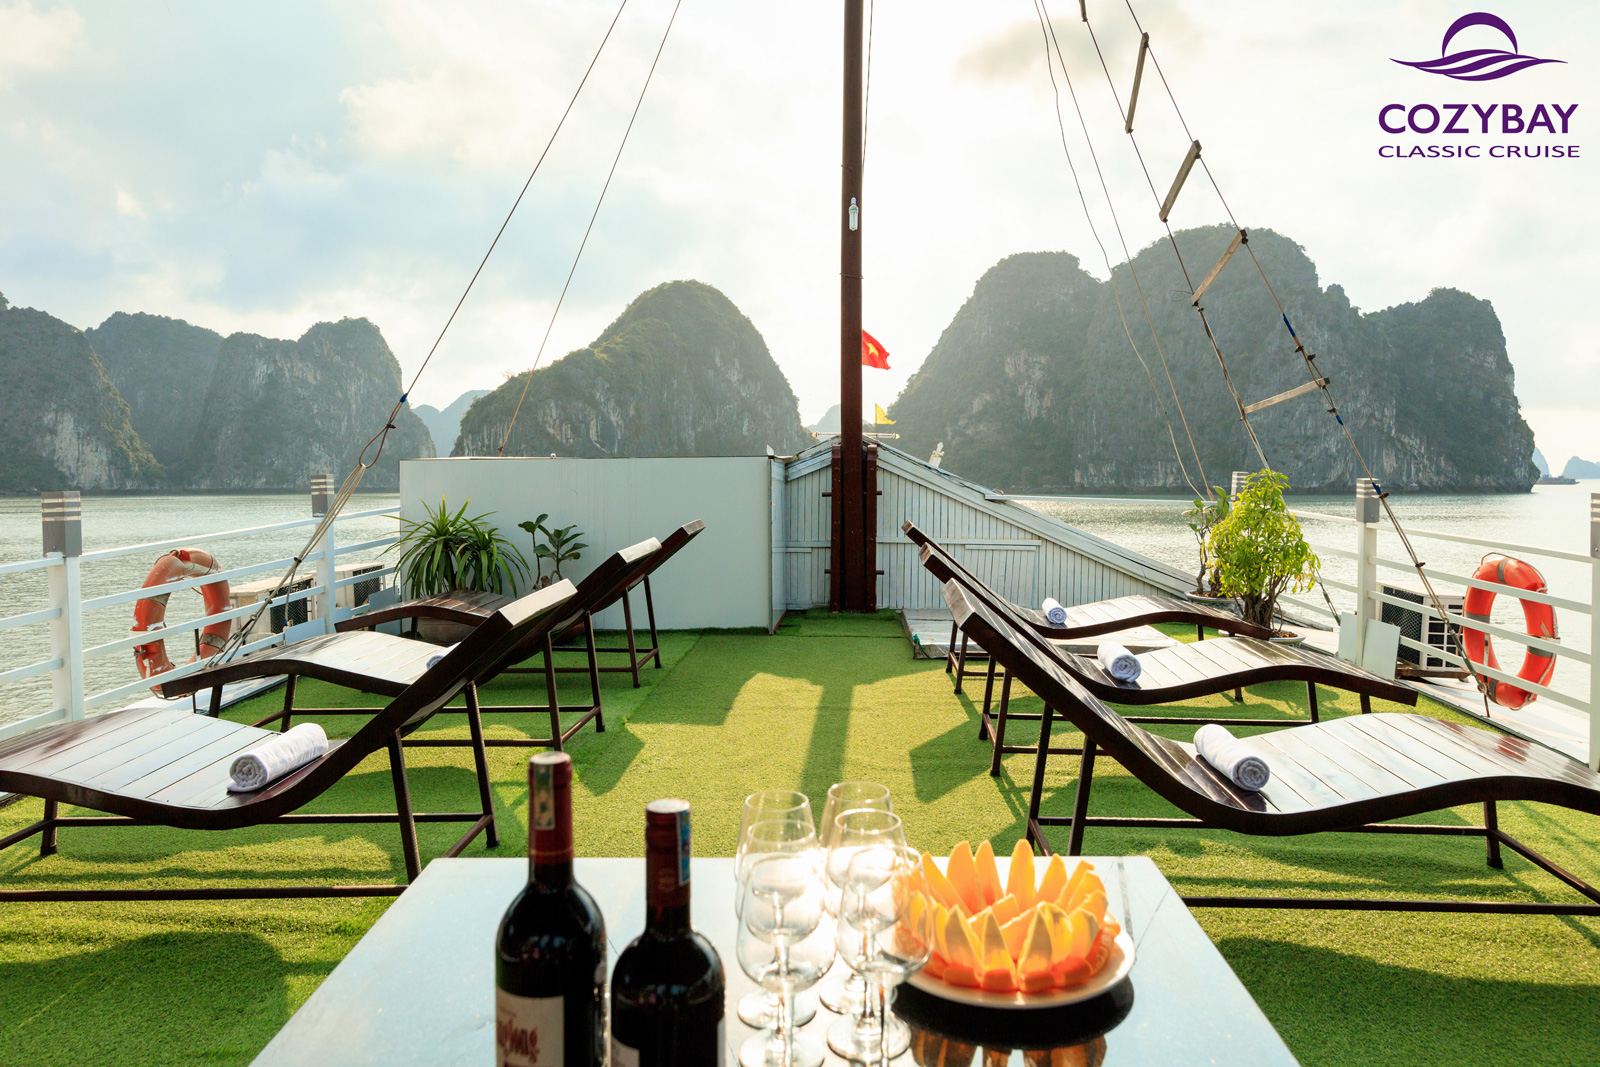 halong bay Cruise, cozy bay cruise halong bay